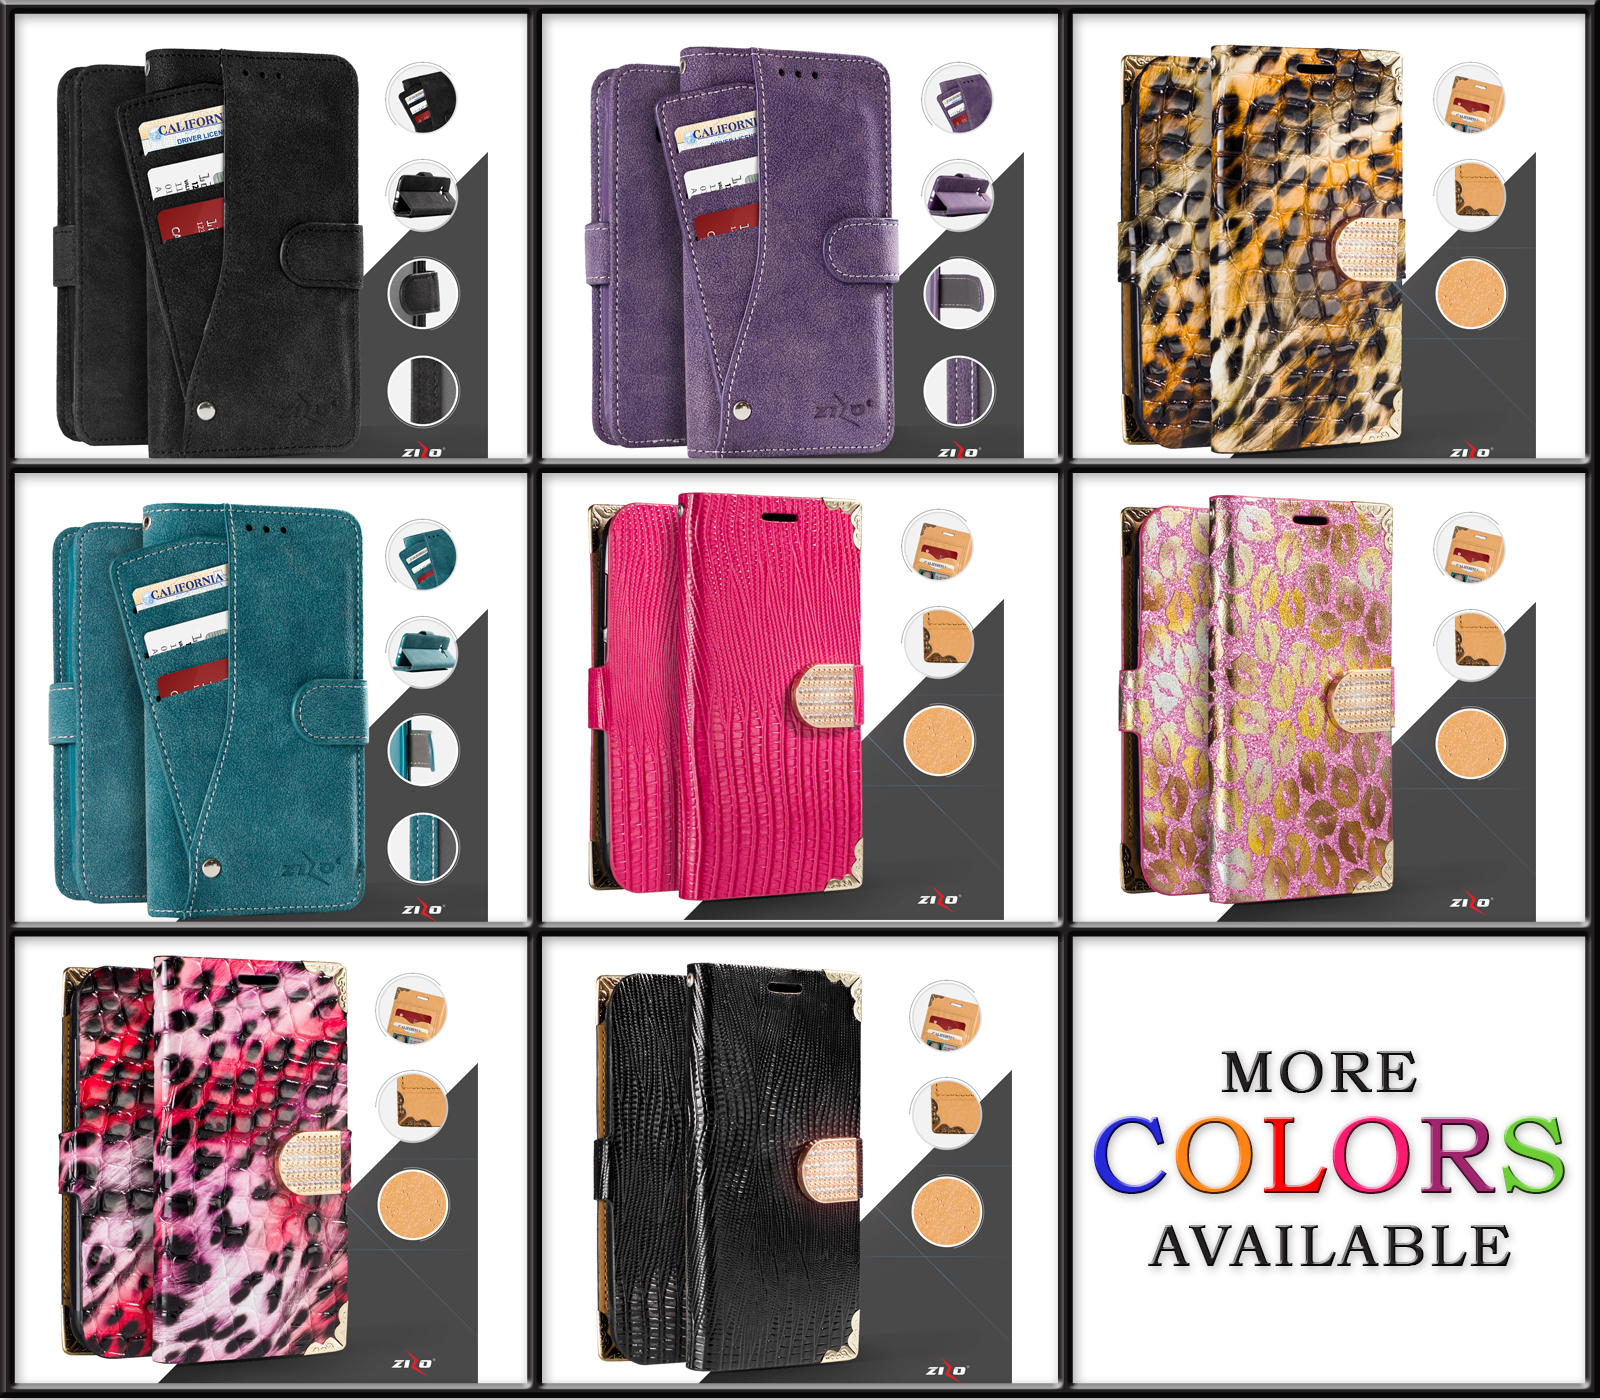 Stylish Exclusive Iphone Cases - Cell Phone Wallet Case - Iphone 6, 7 & Plus